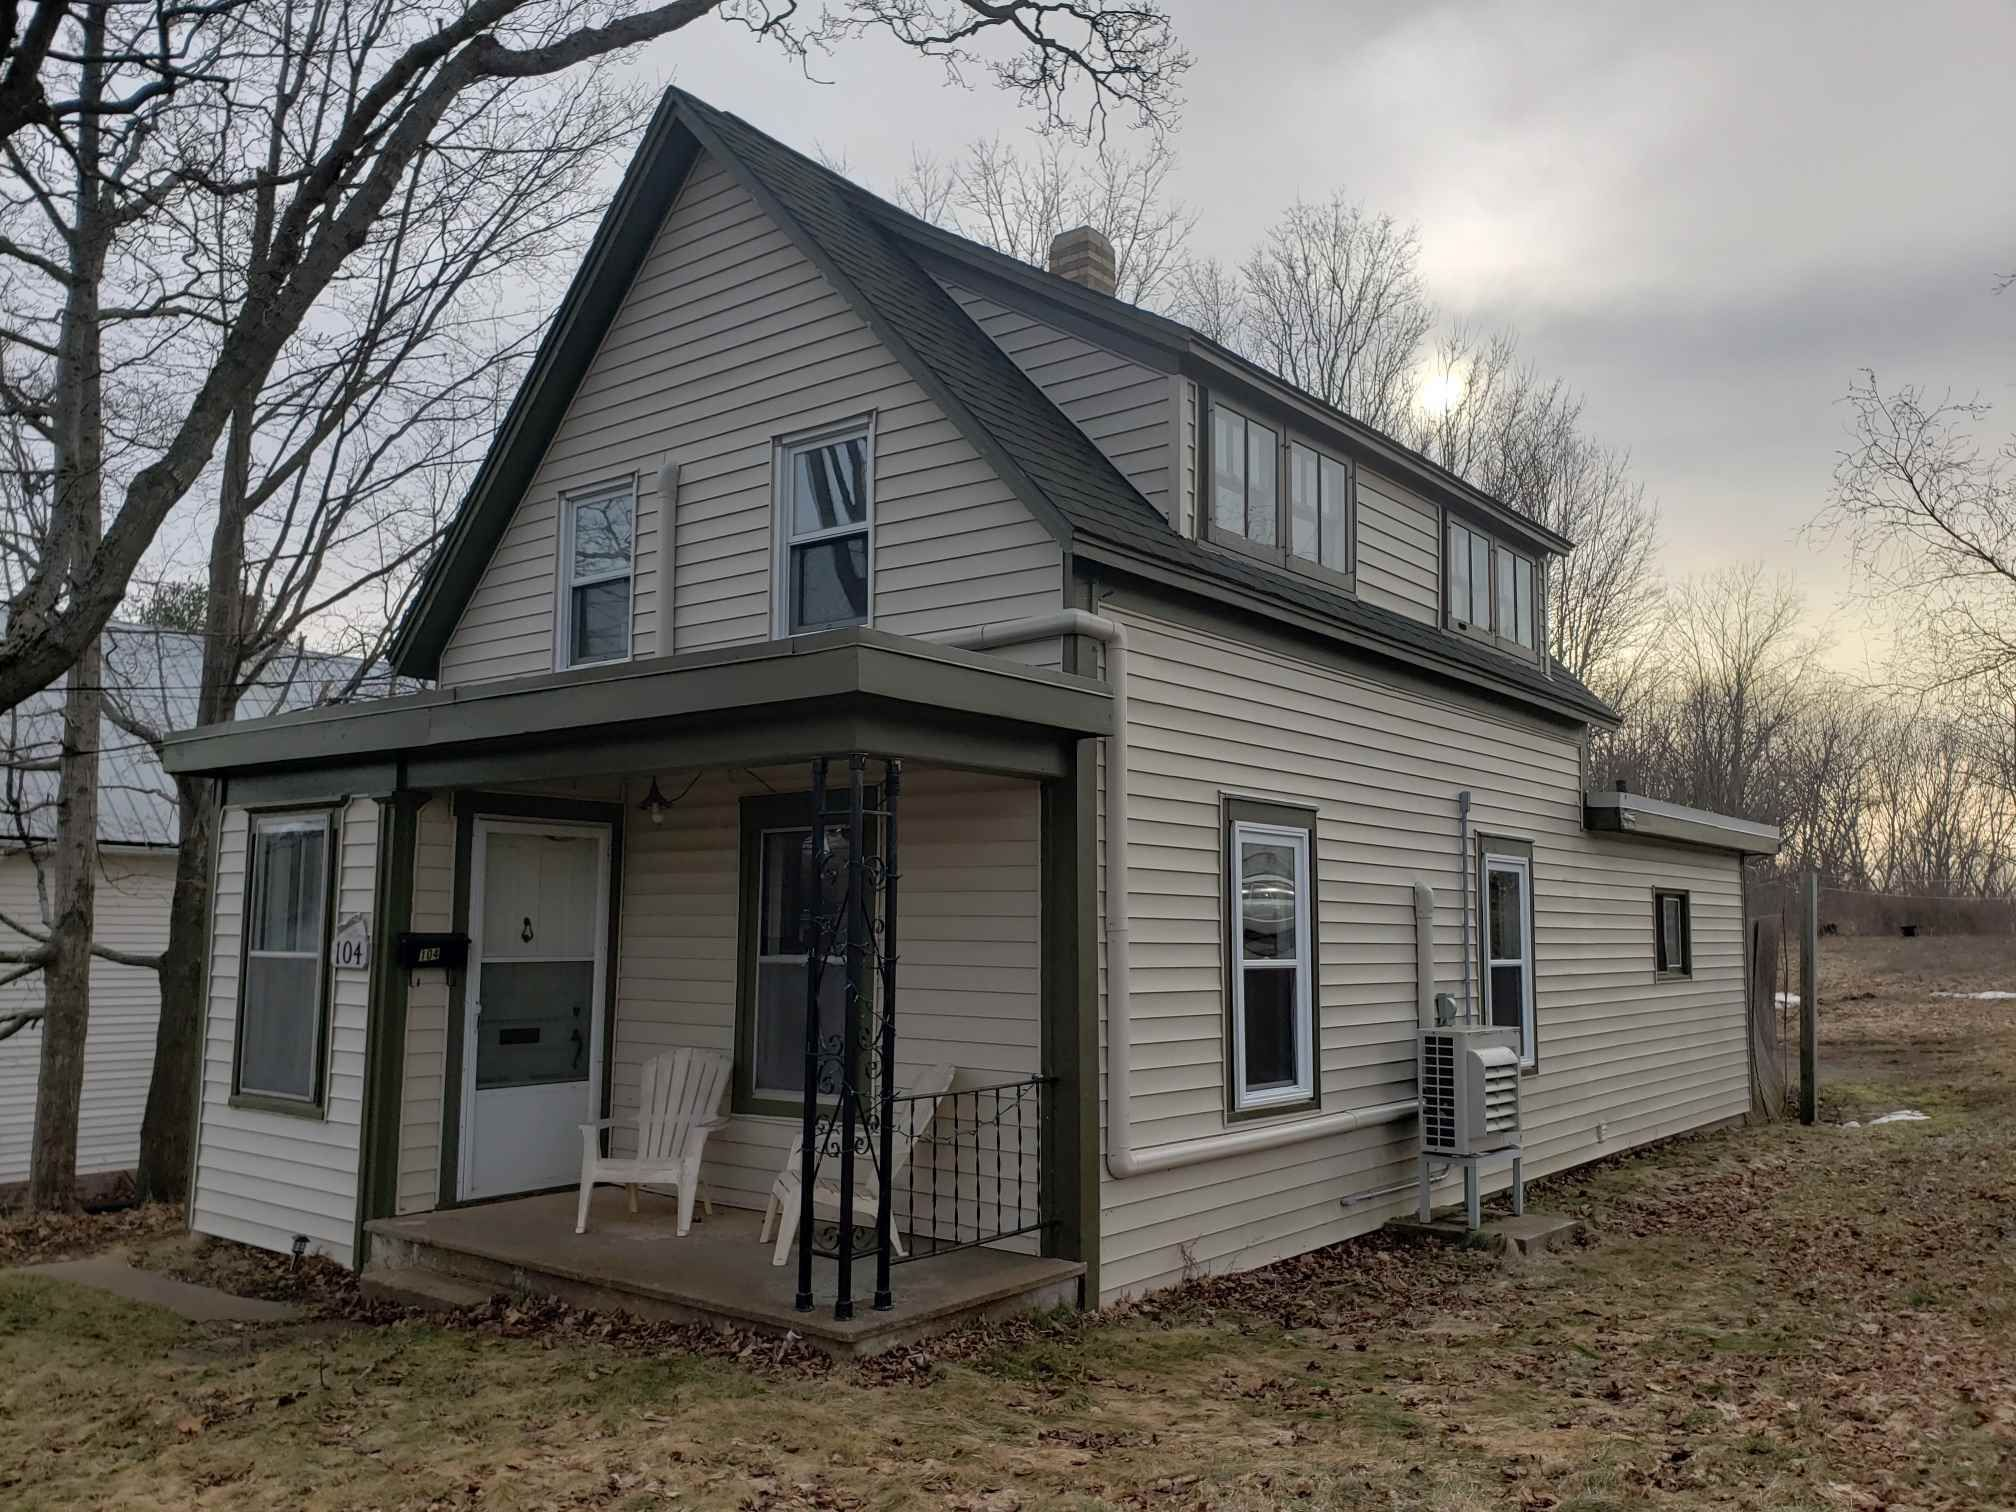 Main Photo: 104 Oakdene Avenue in Kentville: 404-Kings County Residential for sale (Annapolis Valley)  : MLS®# 202103946